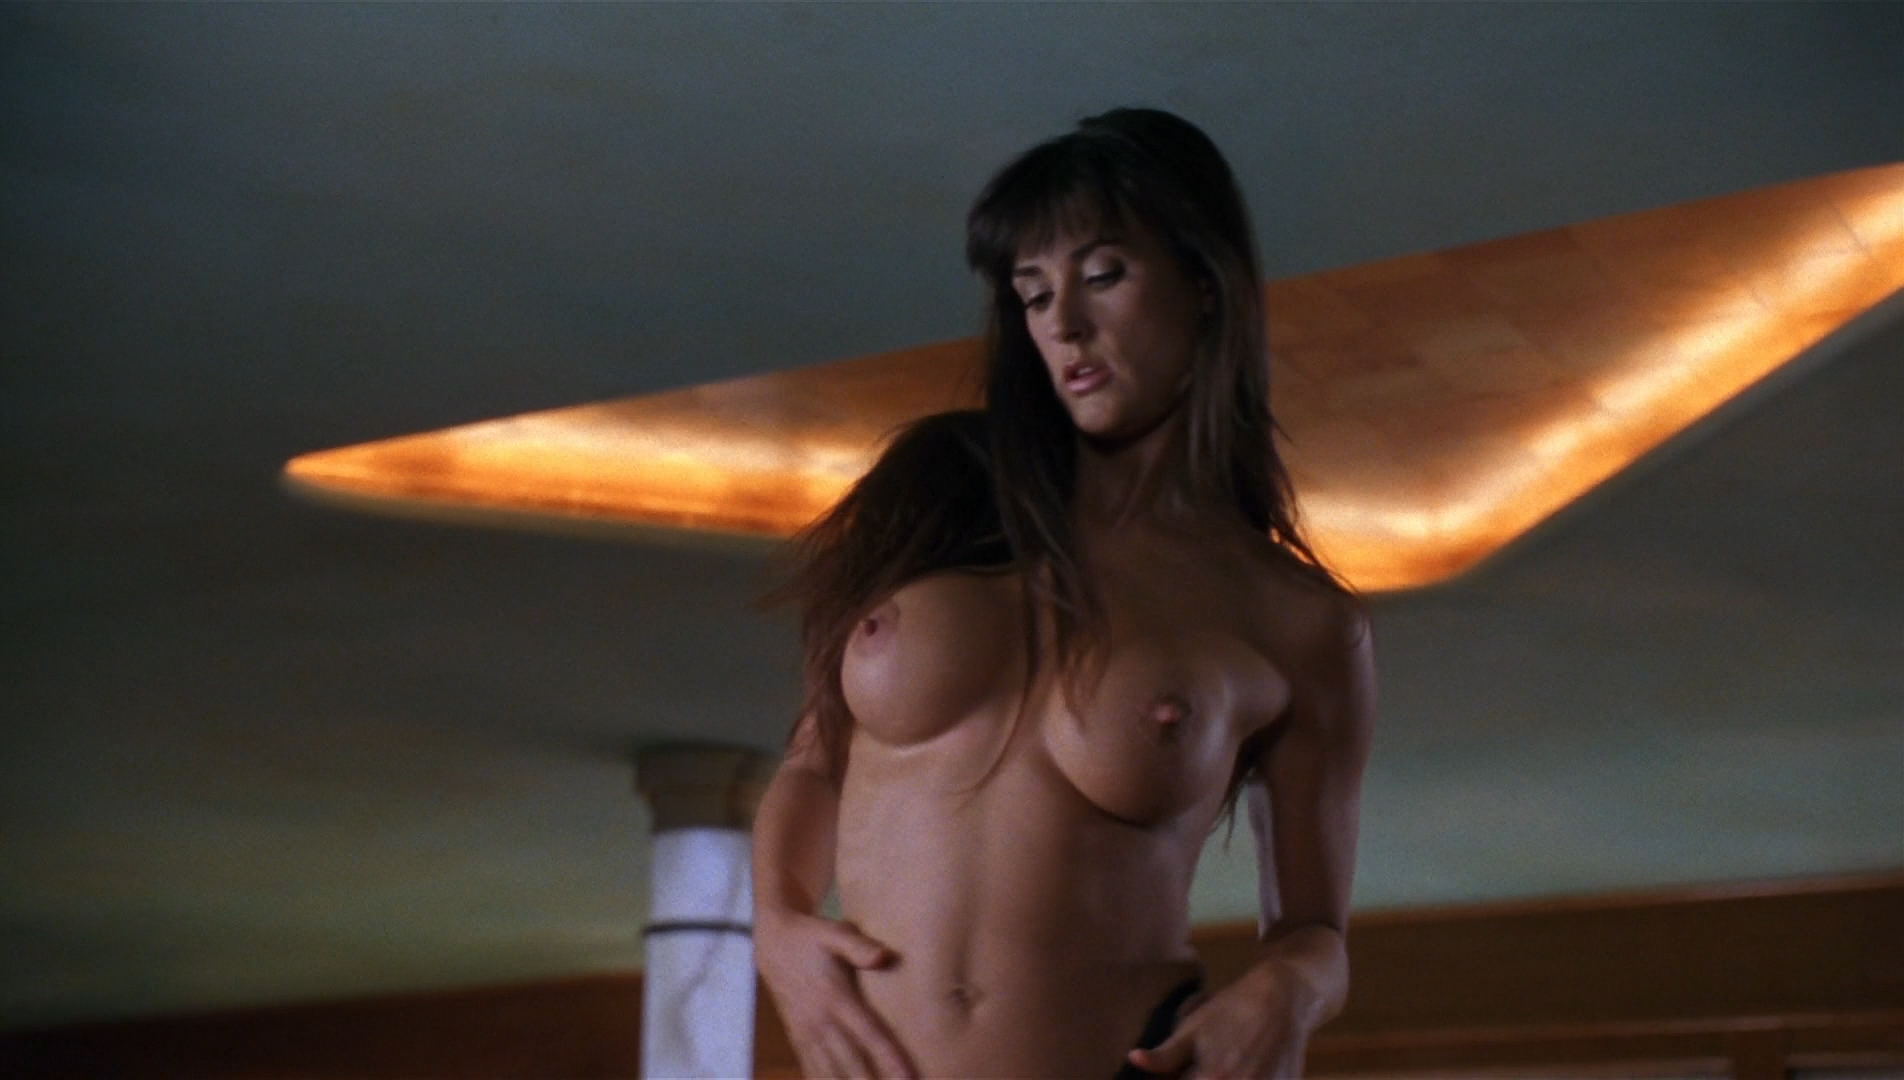 Frontal full naked demi moore, cum on small tits bukkake